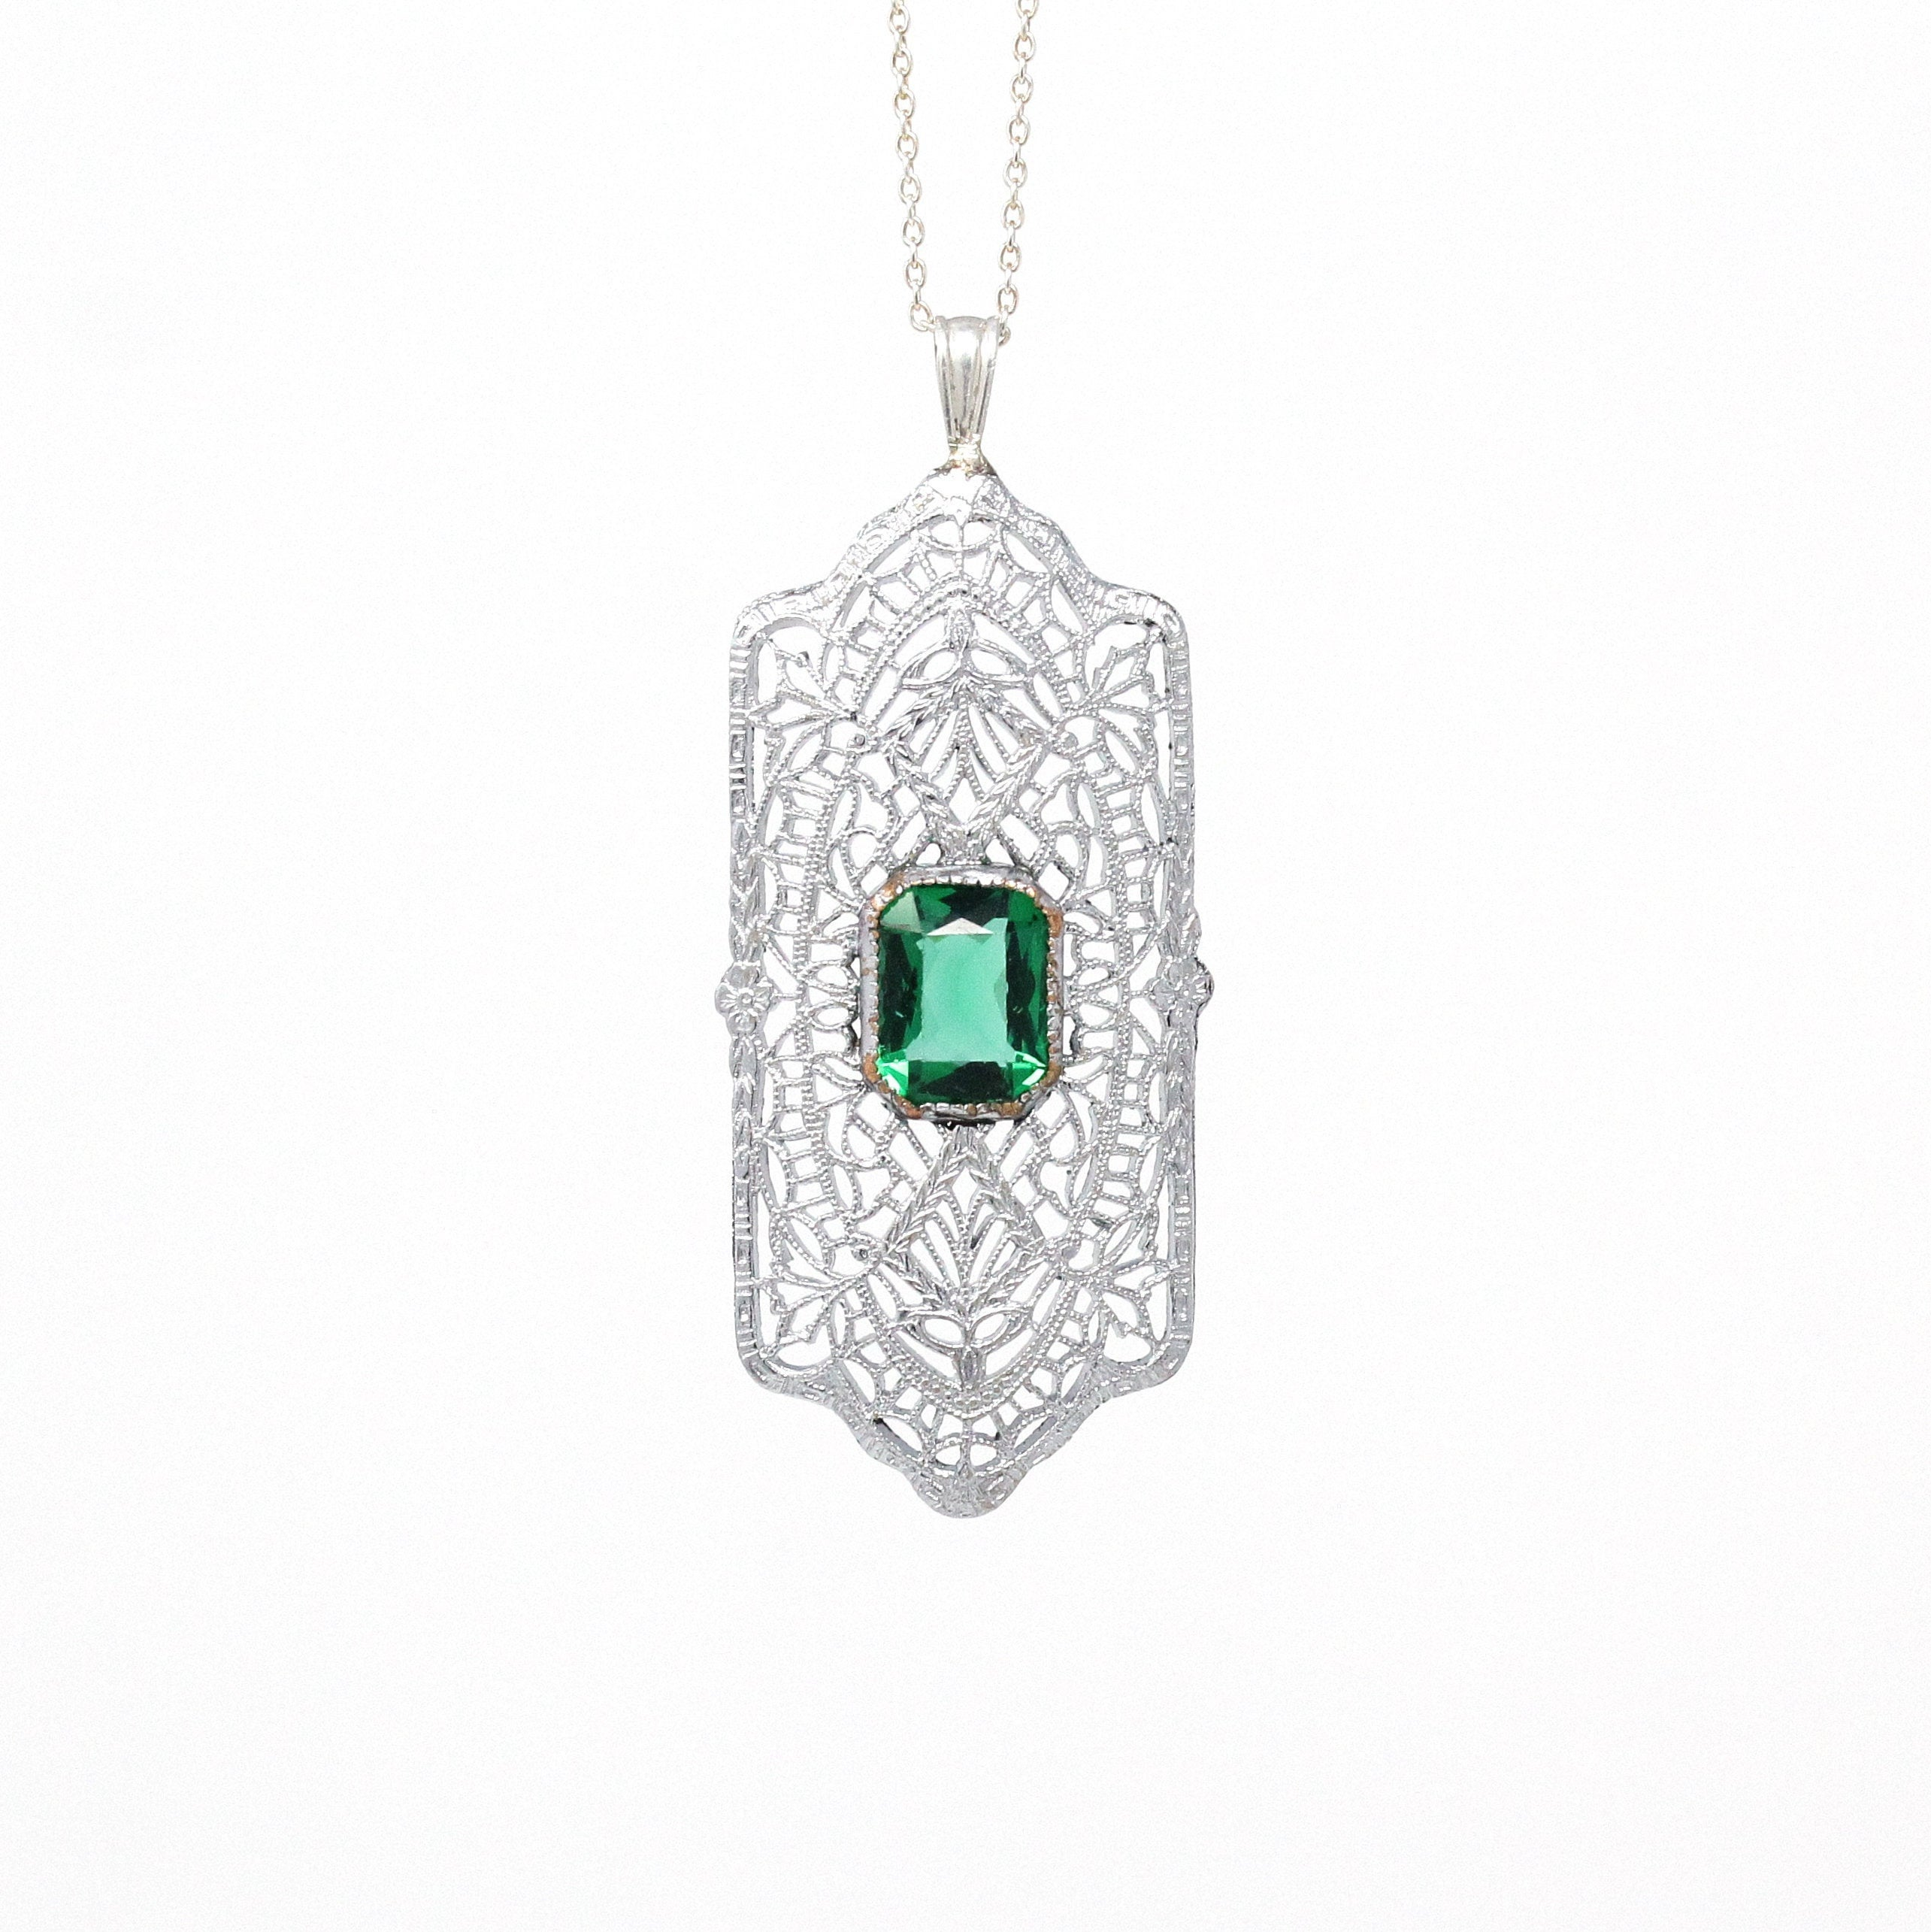 122065 Diamontrigue Jewelry: Art Deco Necklace - Diamontrigue Jewelry